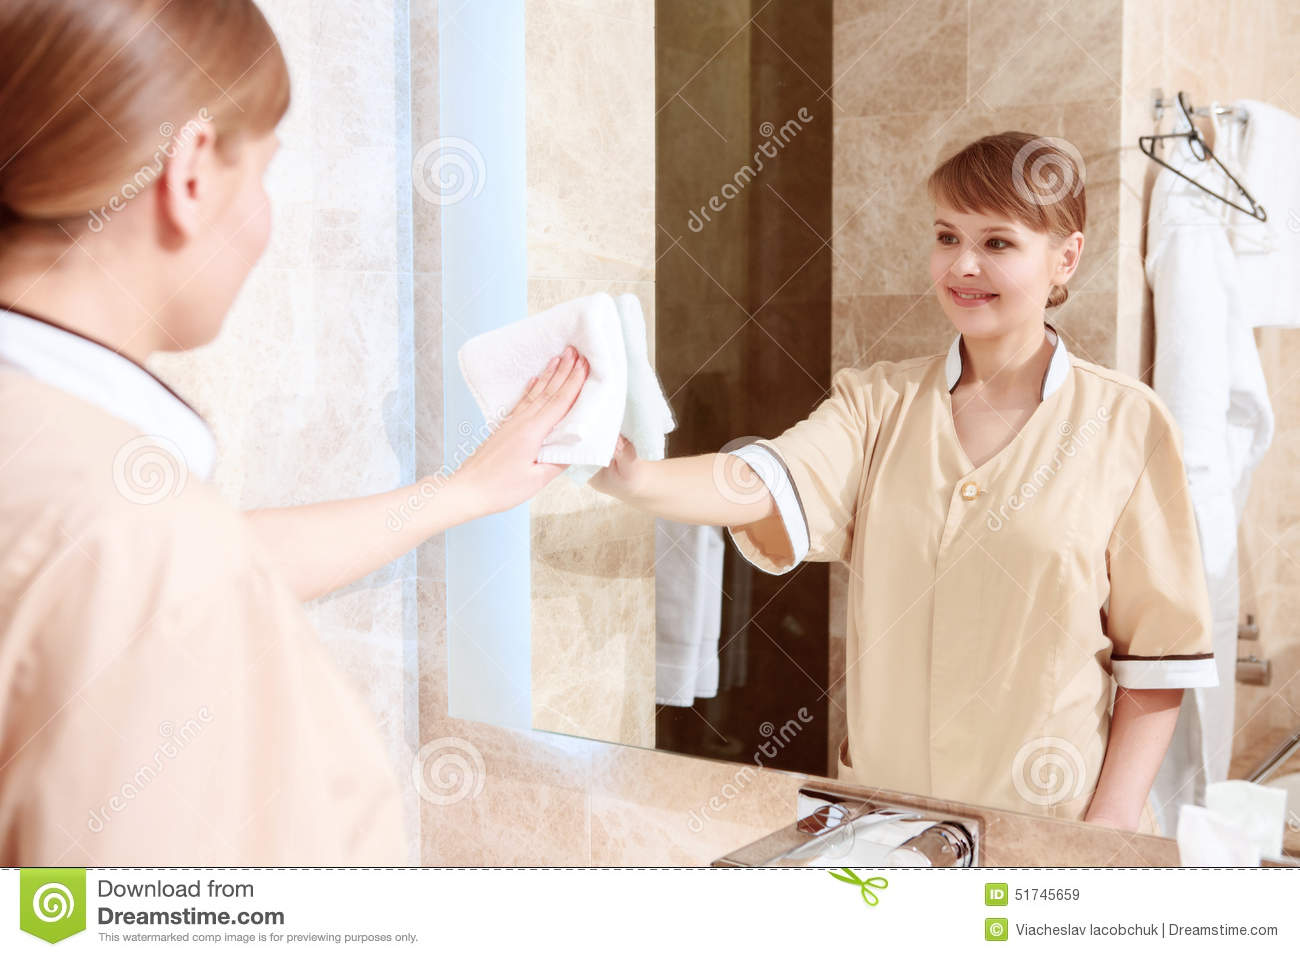 How to clean bathroom mirror - Cleaning Up The Mirror In Room Royalty Free Stock Images